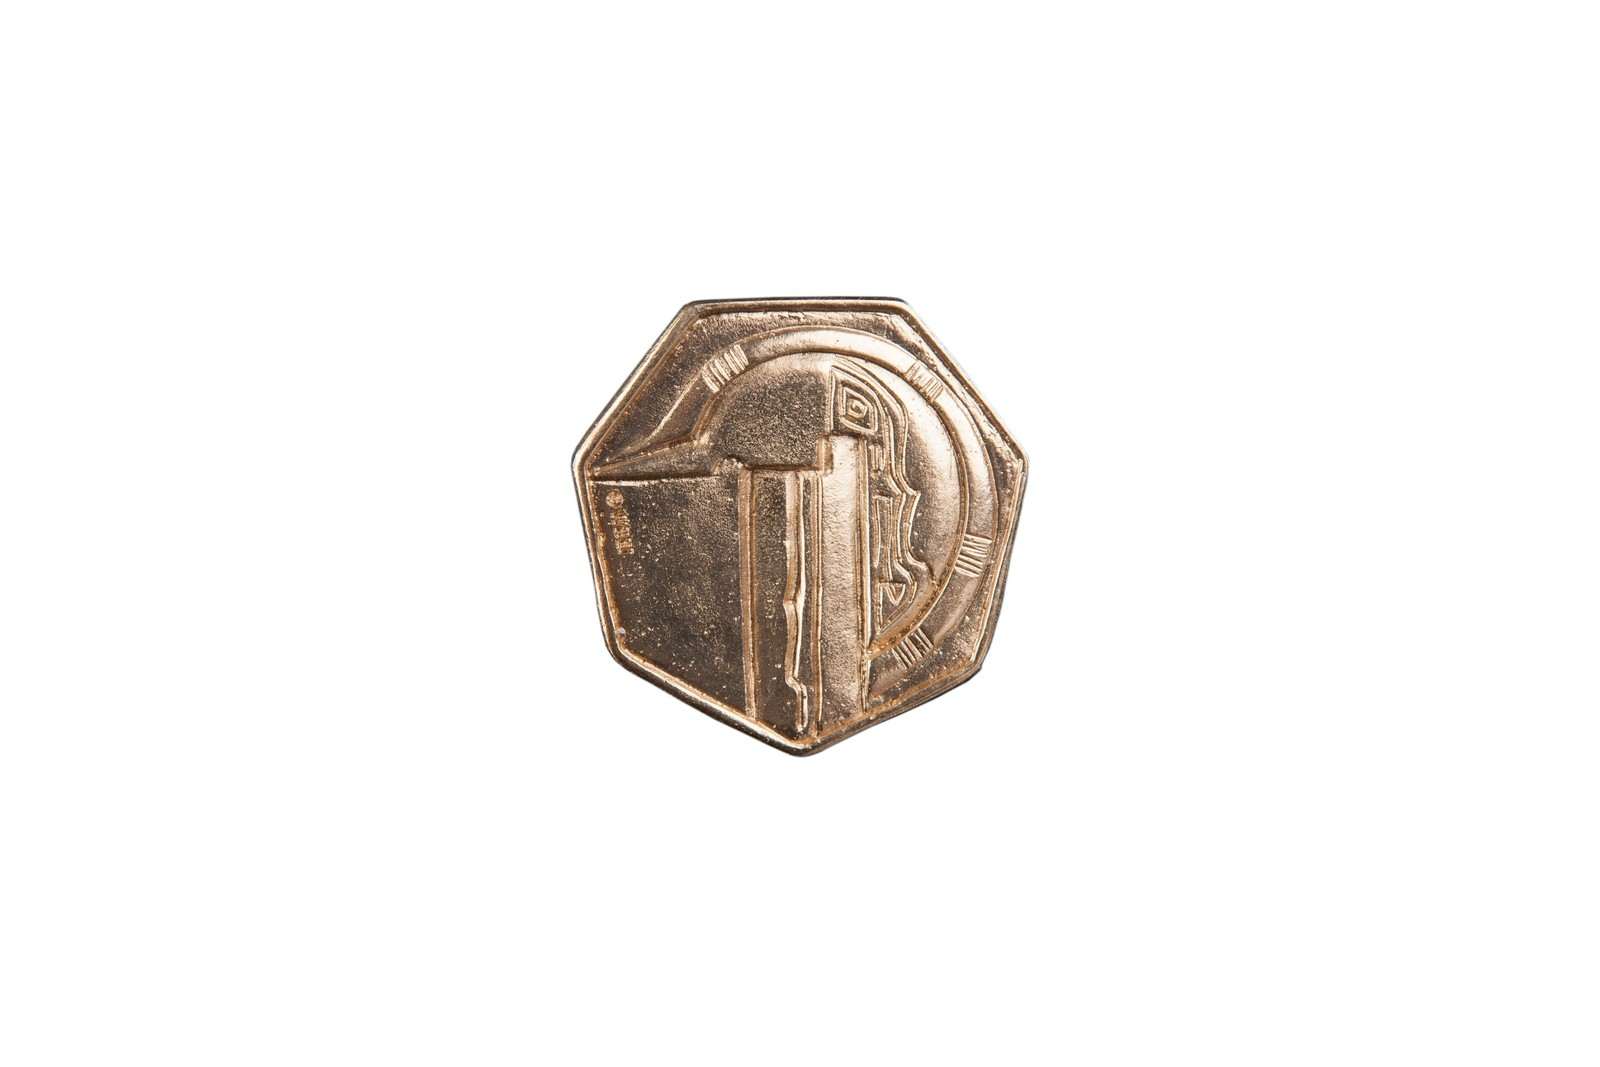 The Hobbit: Desolation of Smaug Treasure Coin #4 image